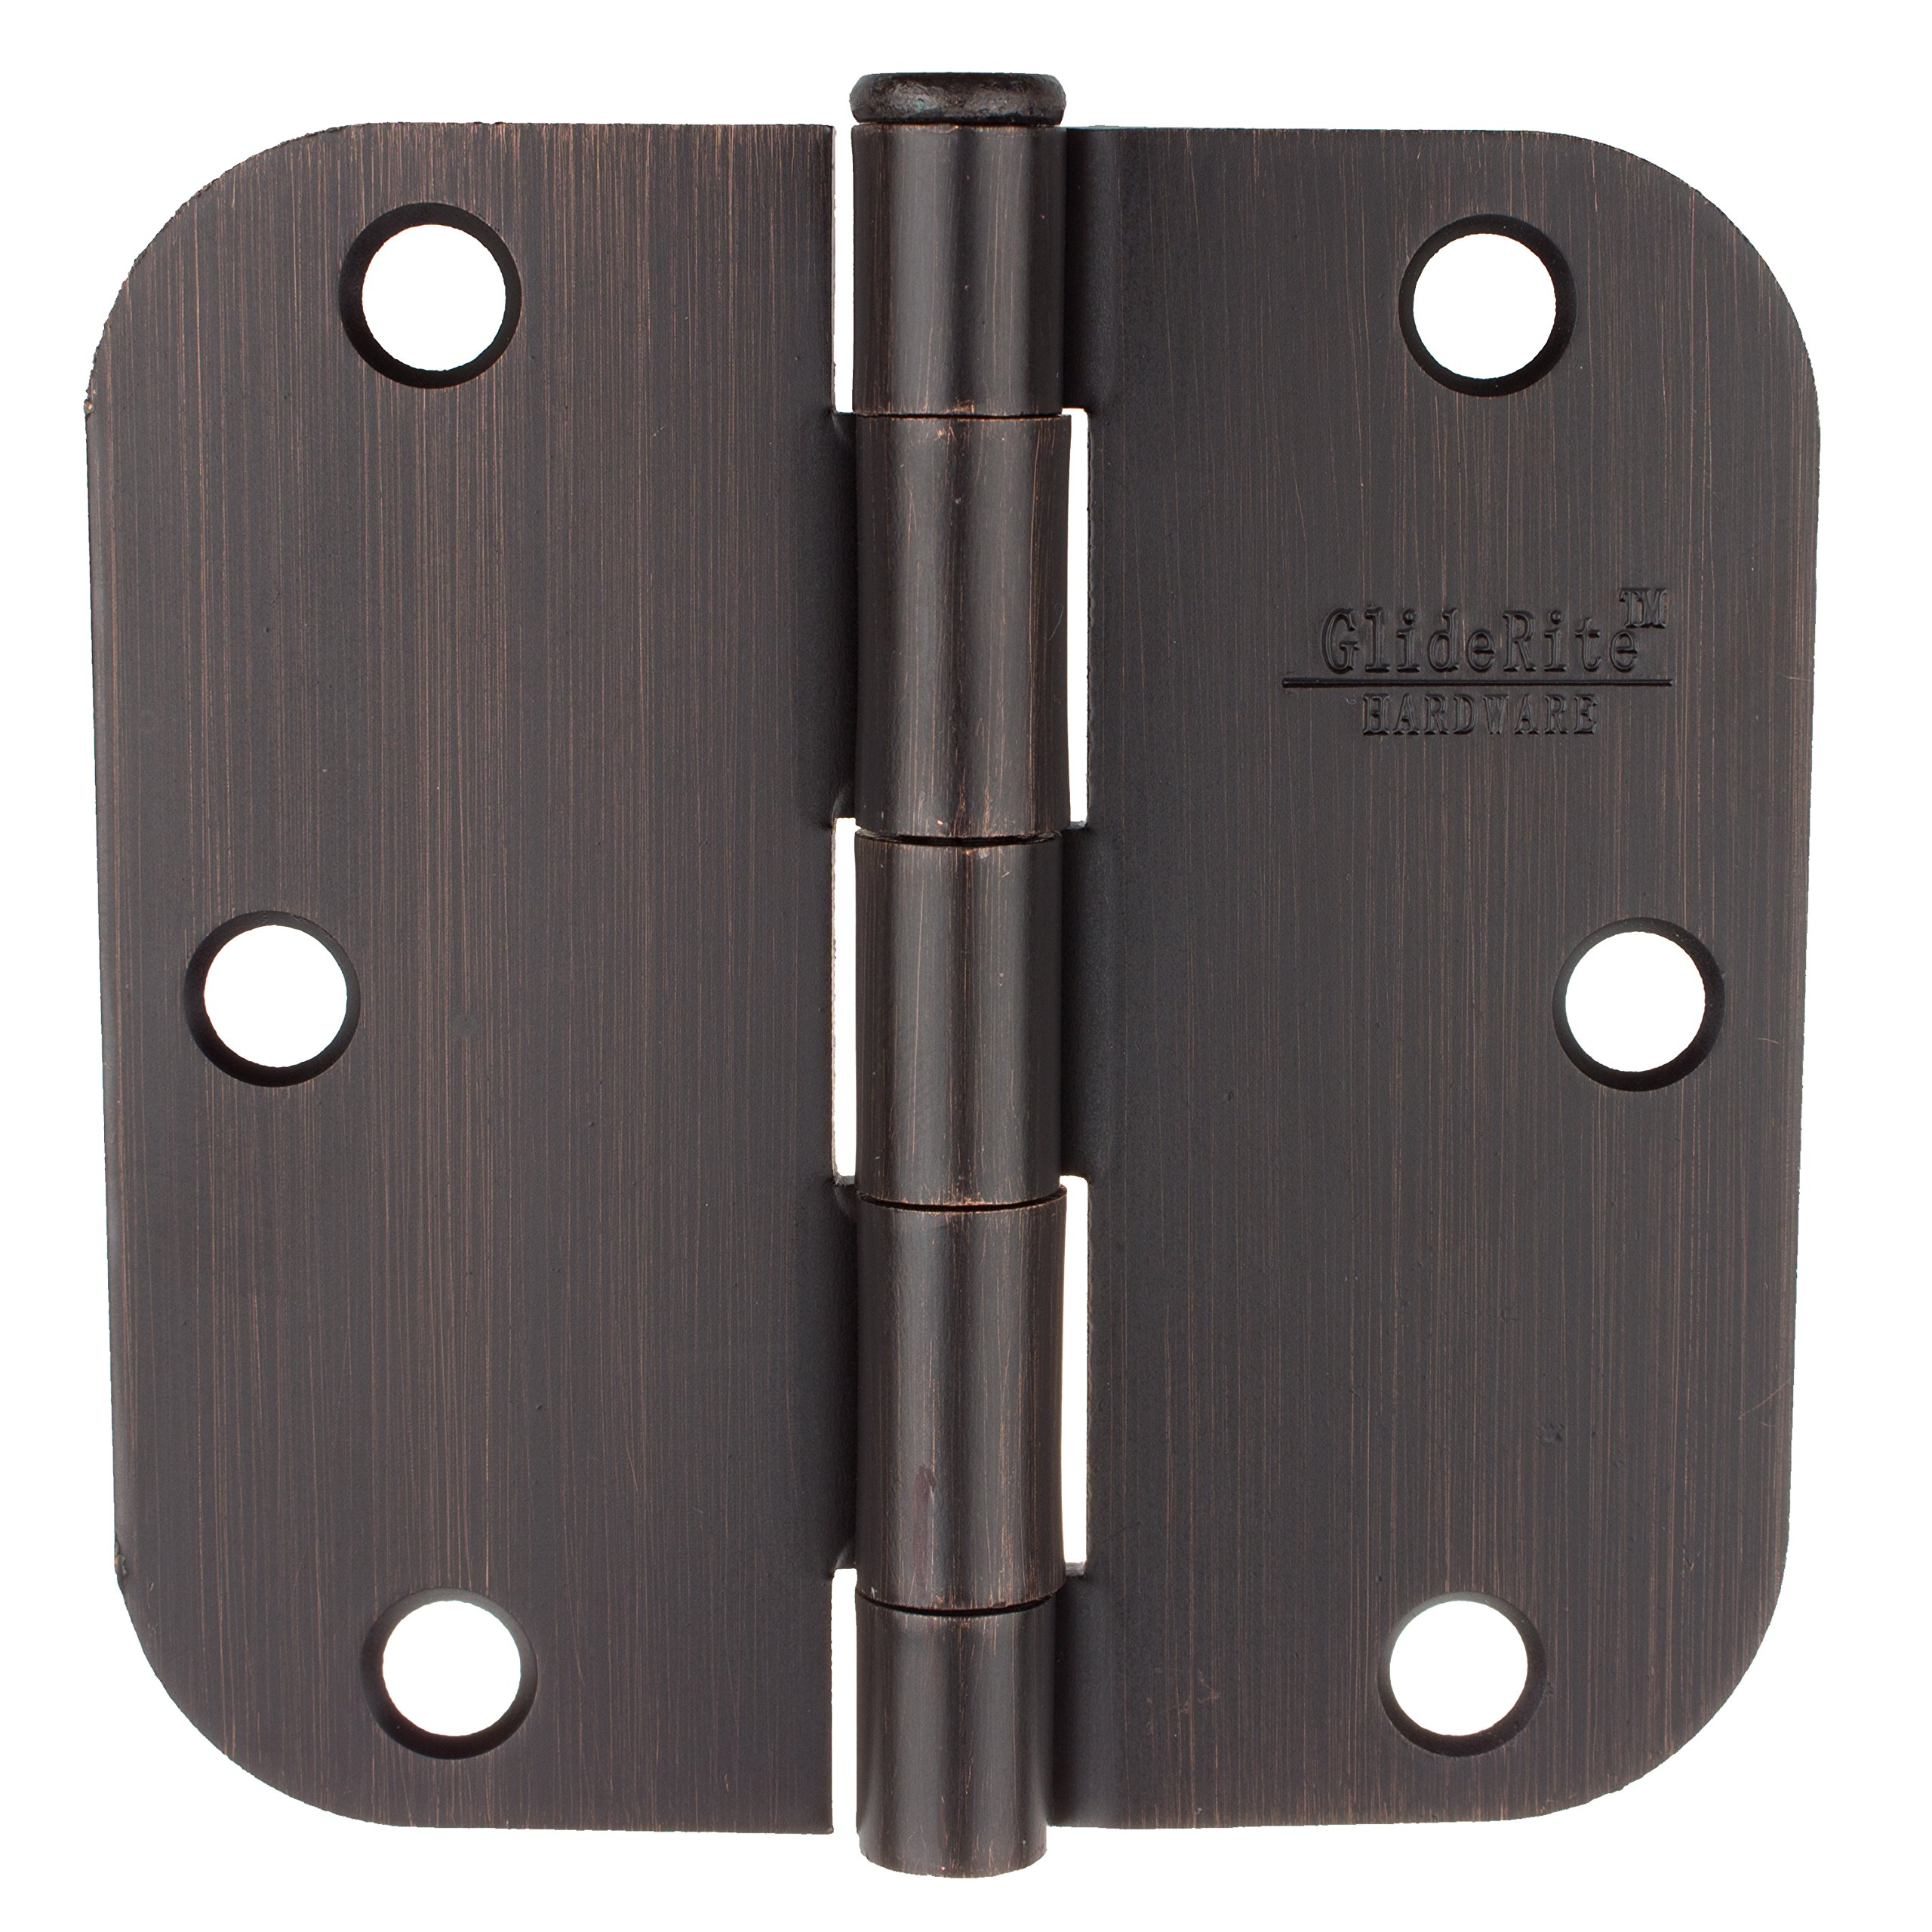 GlideRite Hardware 3558-ORB-100 3.5 inch steel Door Hinges 0.625 inch Radius Oil Rubbed Bronze Finish 100 Pack